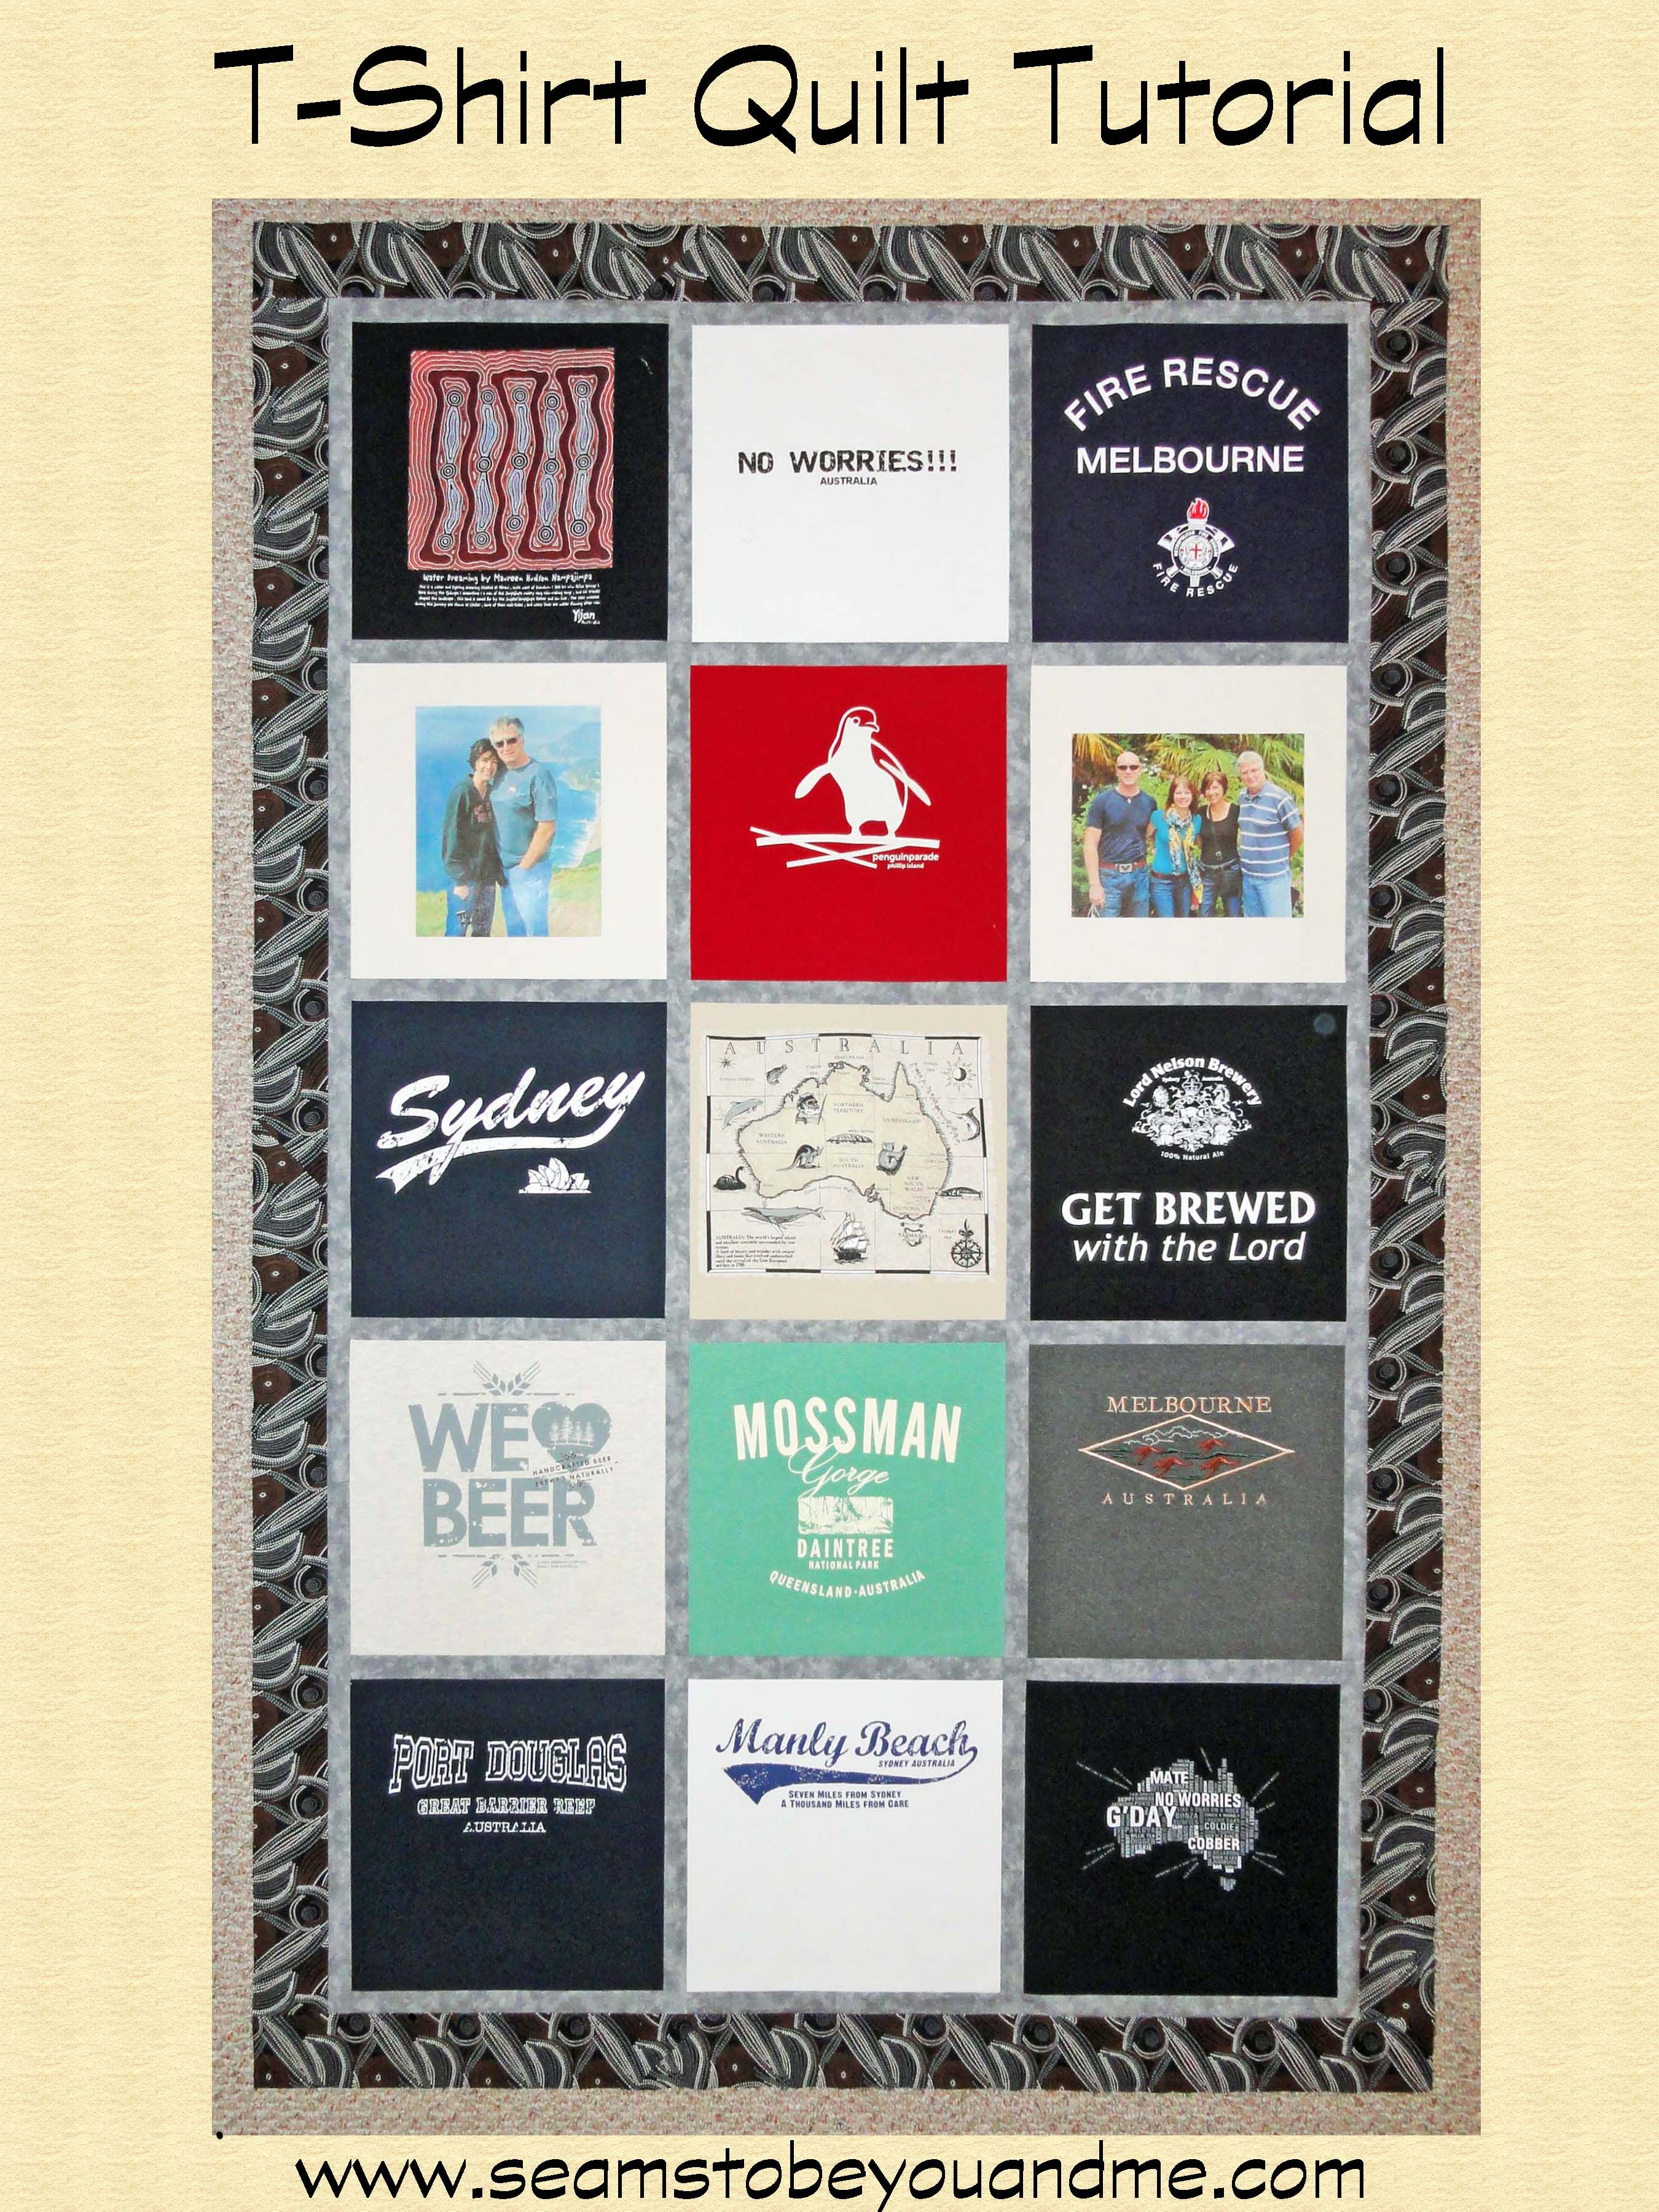 Colleen maybe this can be this years quilt by having